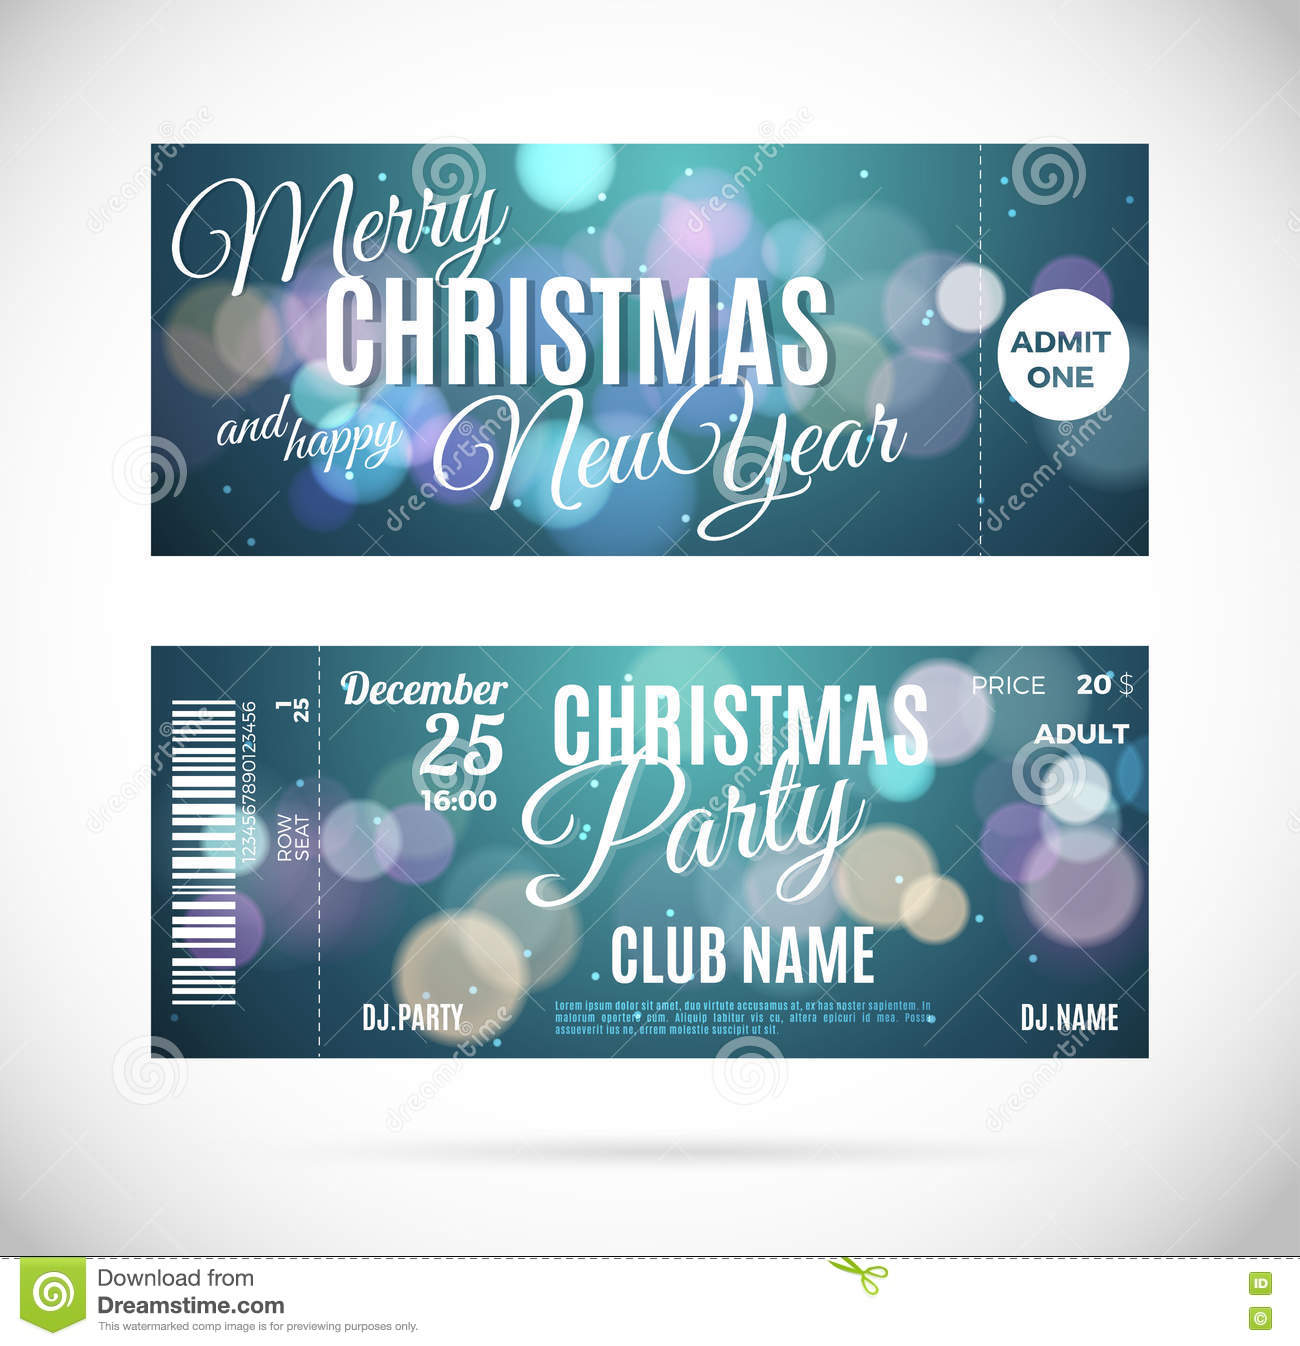 merry christmas and happy new year party ticket modern style design vector vintage detail illustration beautiful element for holiday carnival or festival